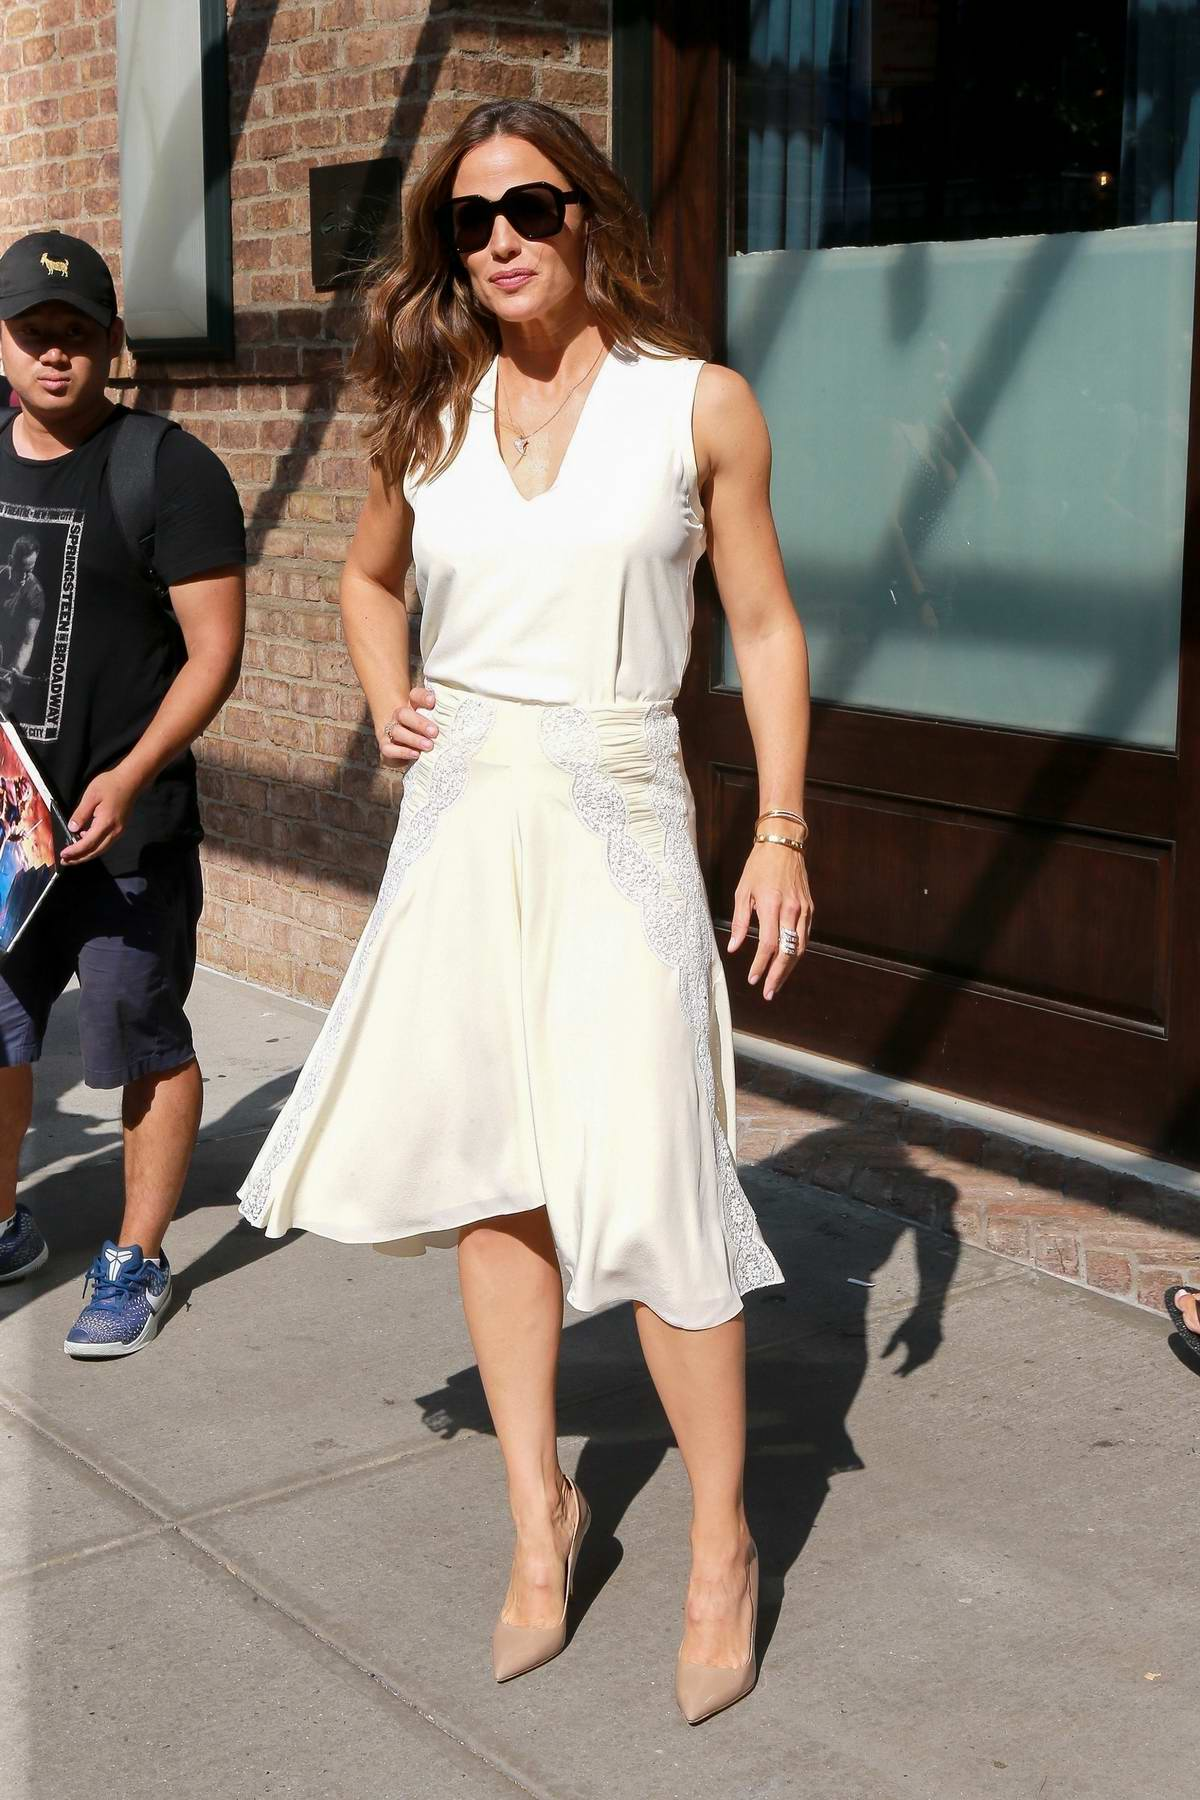 Jennifer Garner looks lovely in a white dress as she leaves The Greenwich Hotel to promote 'Peppermint' in New York City